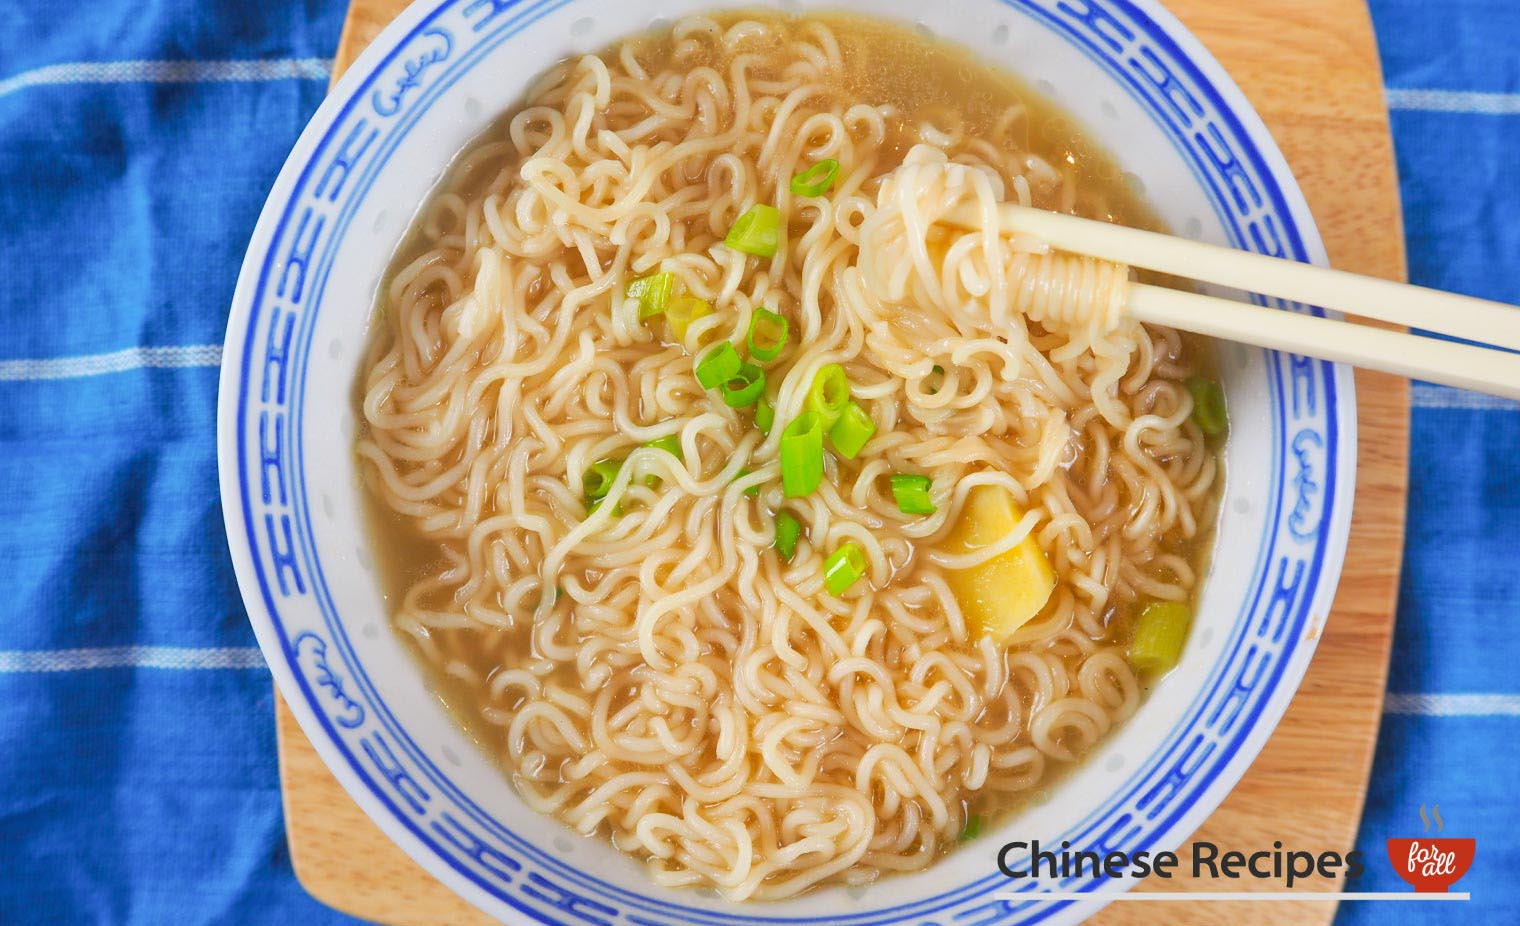 Instant Ramen Noodles Without Using MSG Packet Powder - Chinese Recipes For All